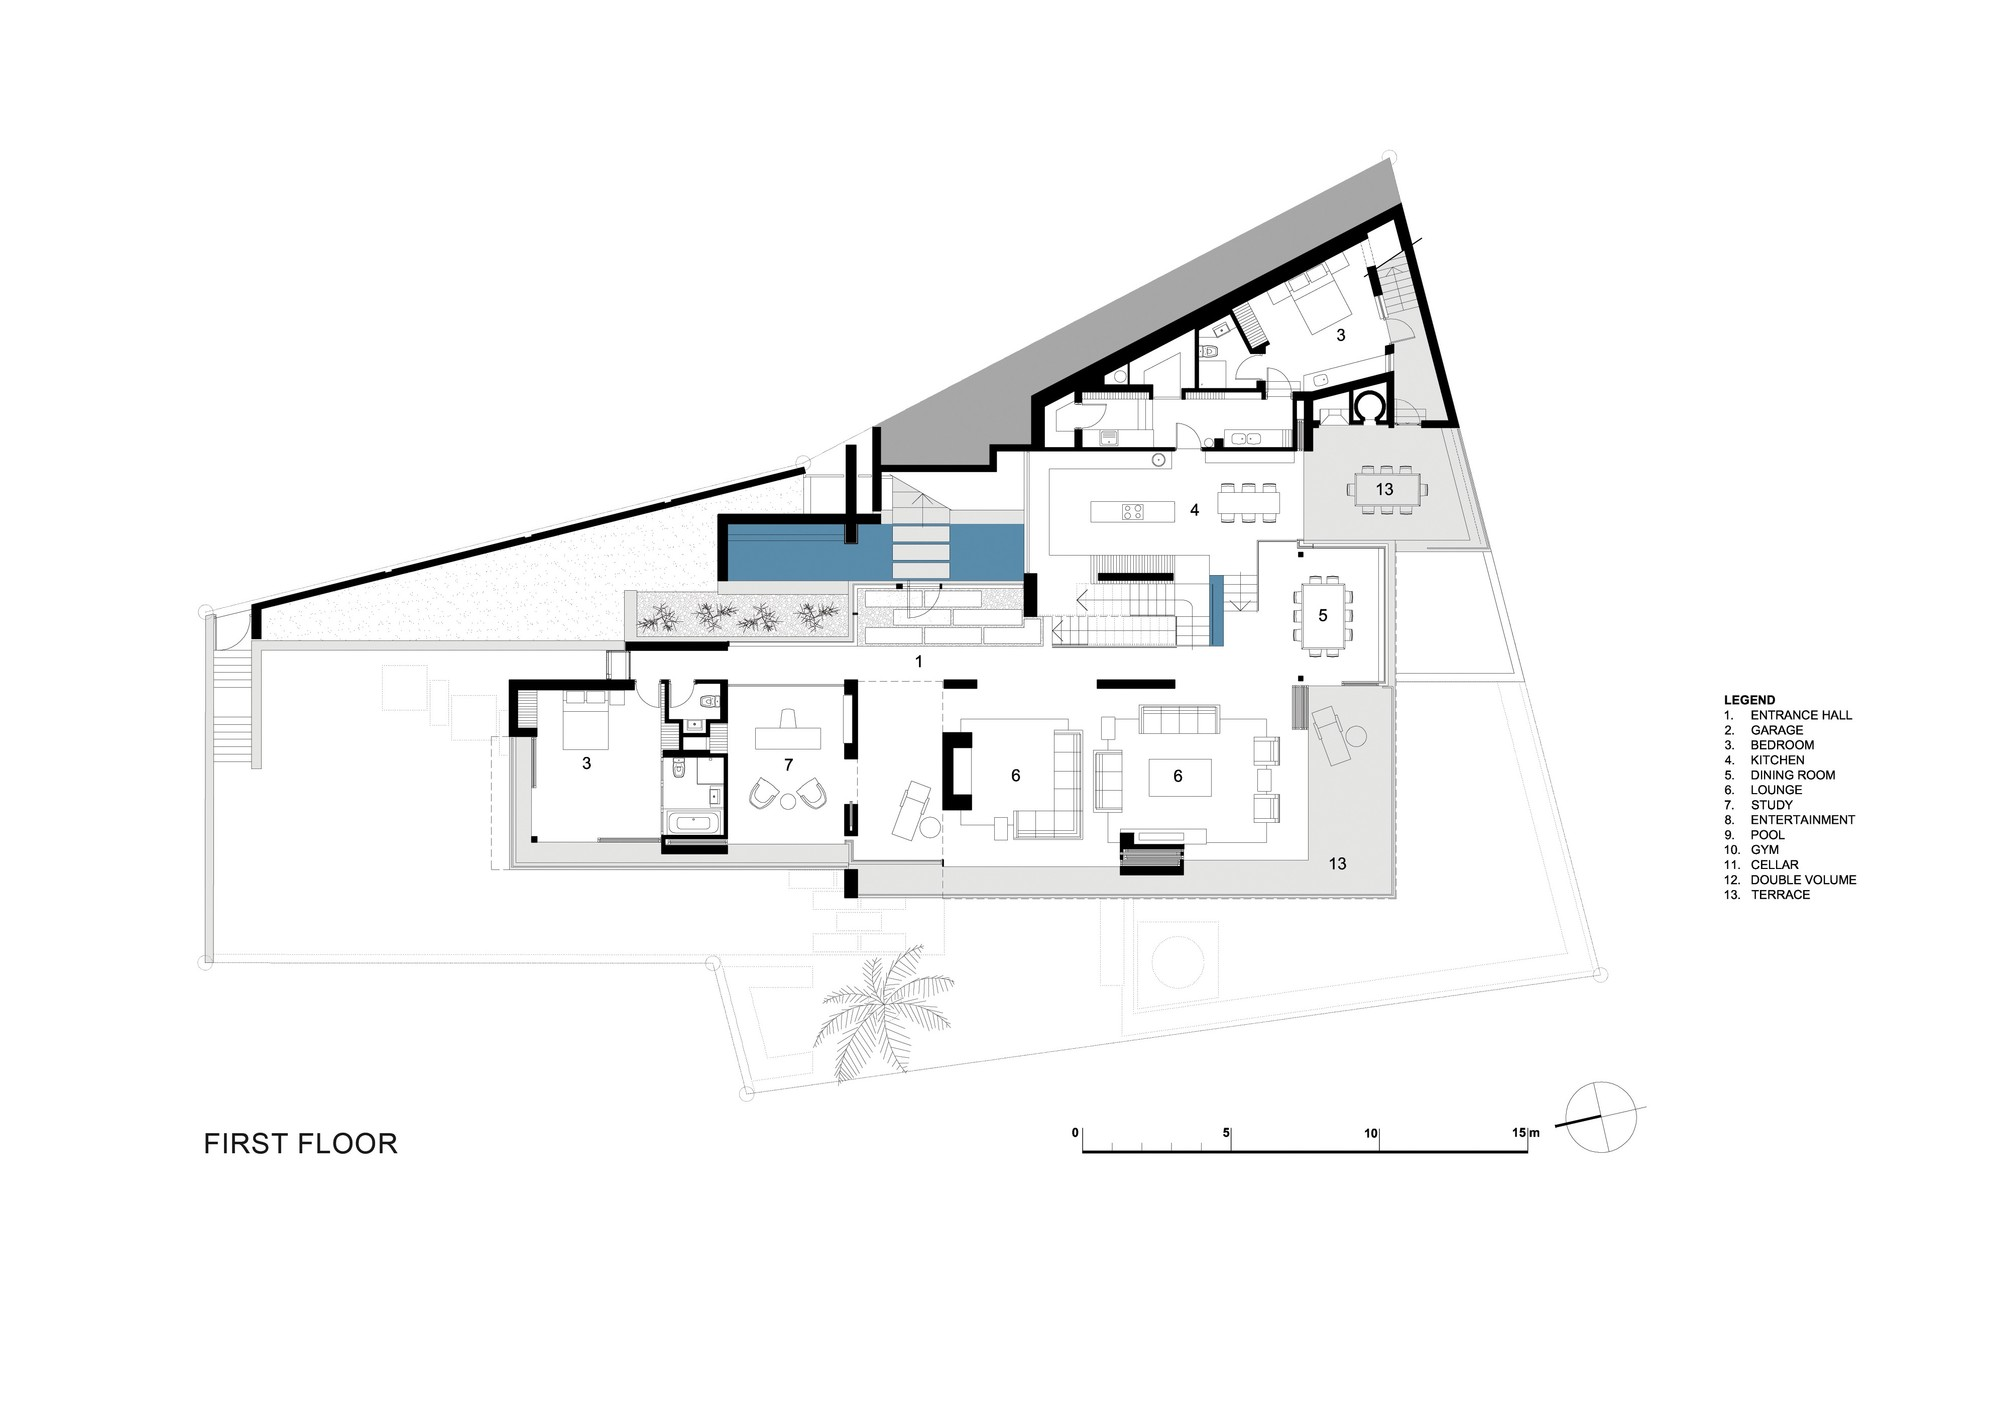 Gallery of st leon 10 saota stefan antoni olmesdahl for Apartment plans south africa